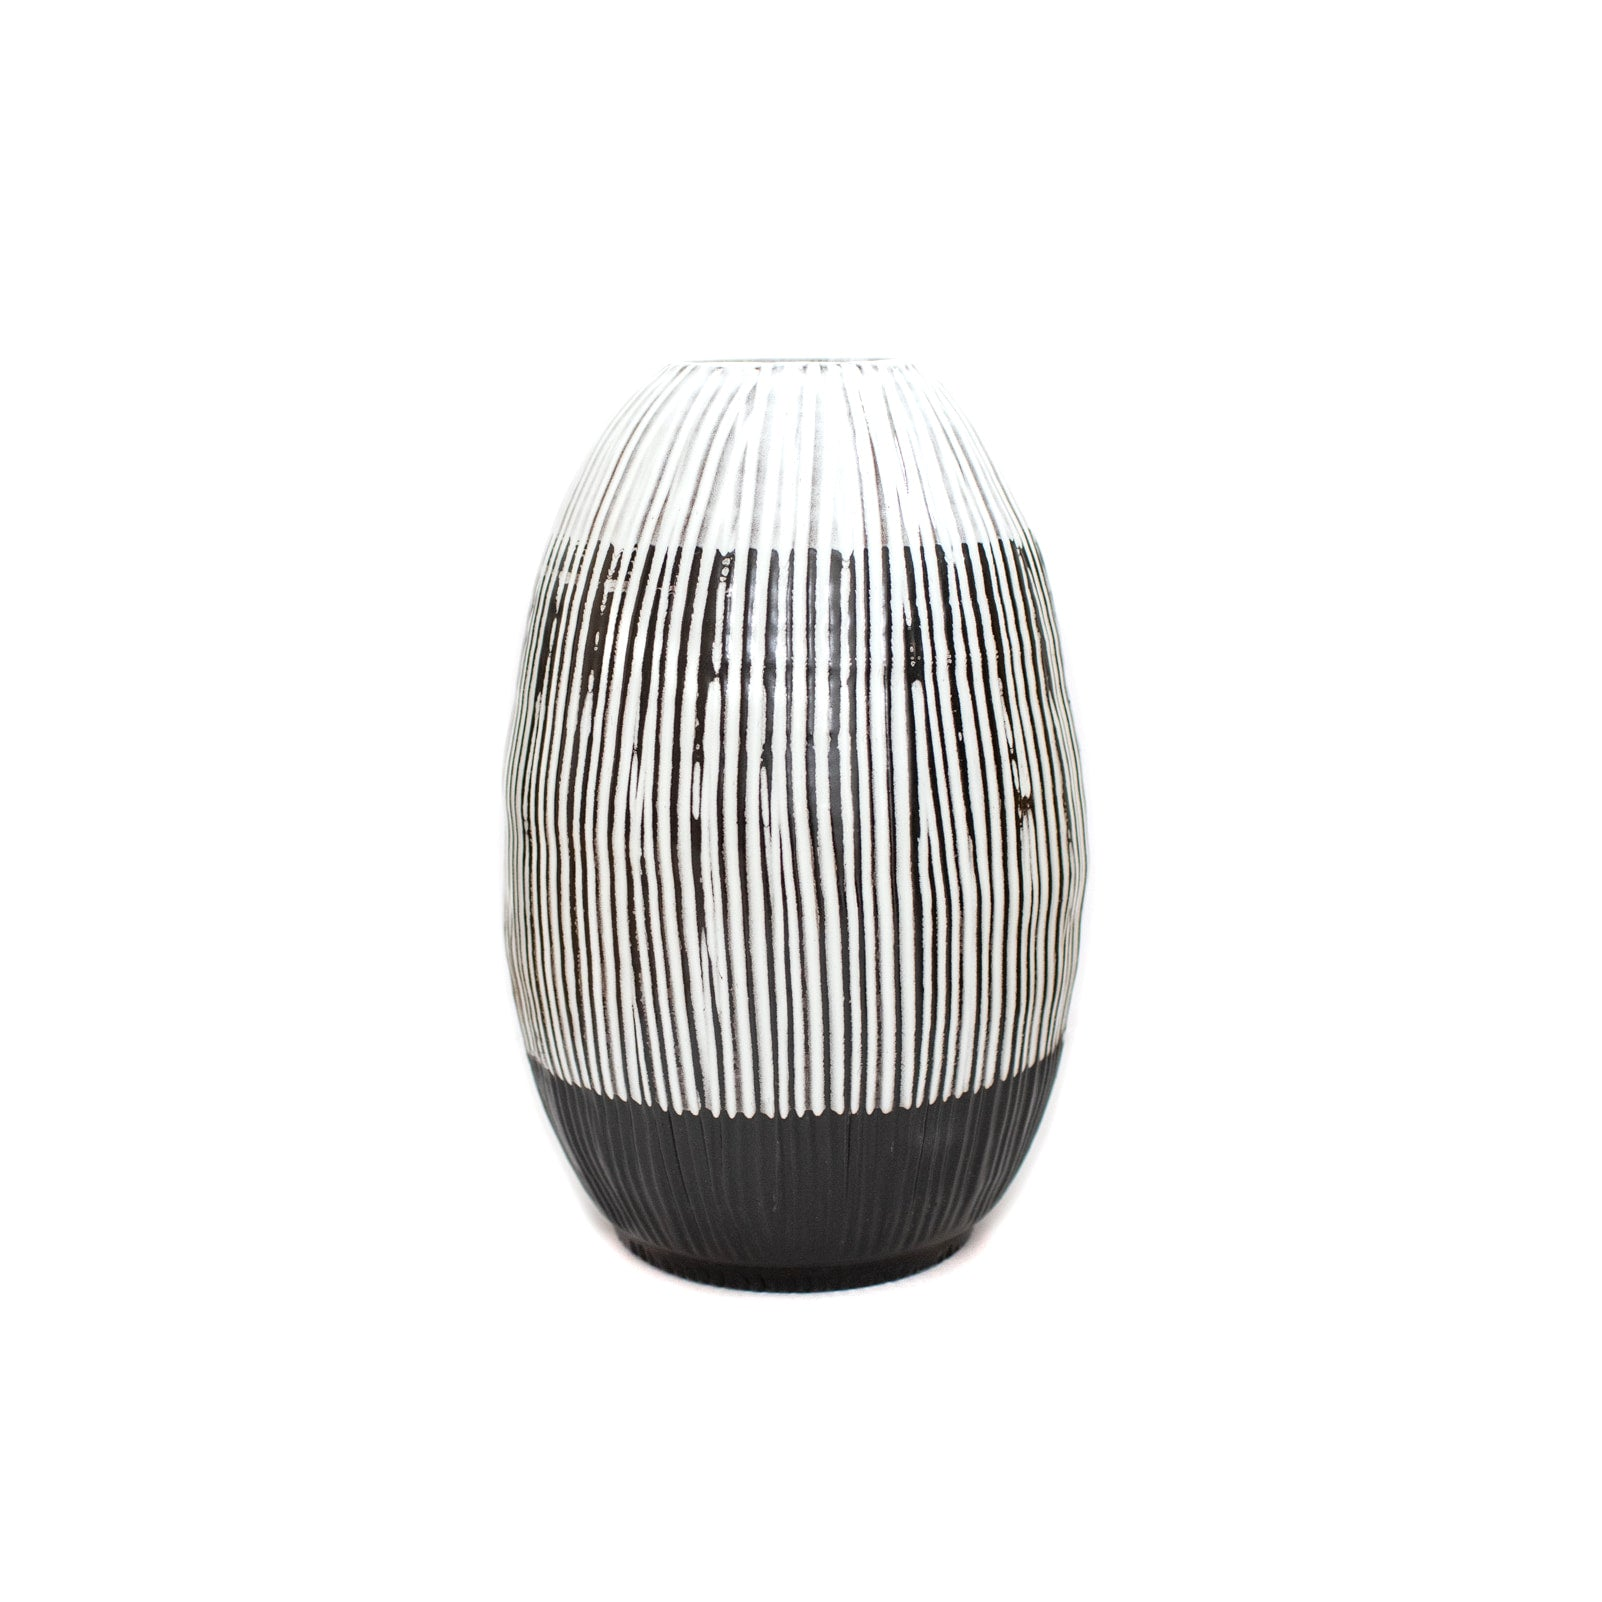 Striated Vase - Pacific Design Co.